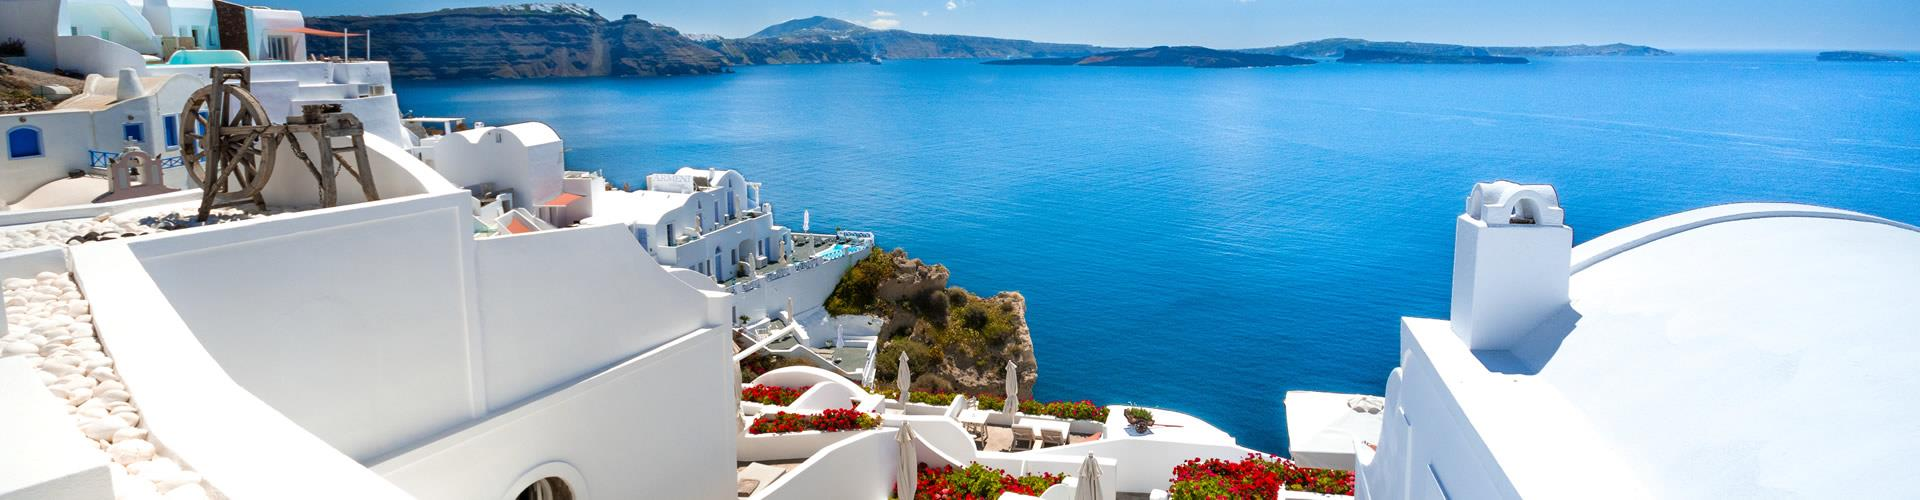 Low-Budget Trip in Santorini? How to Plan an Economical Trip to Santorini